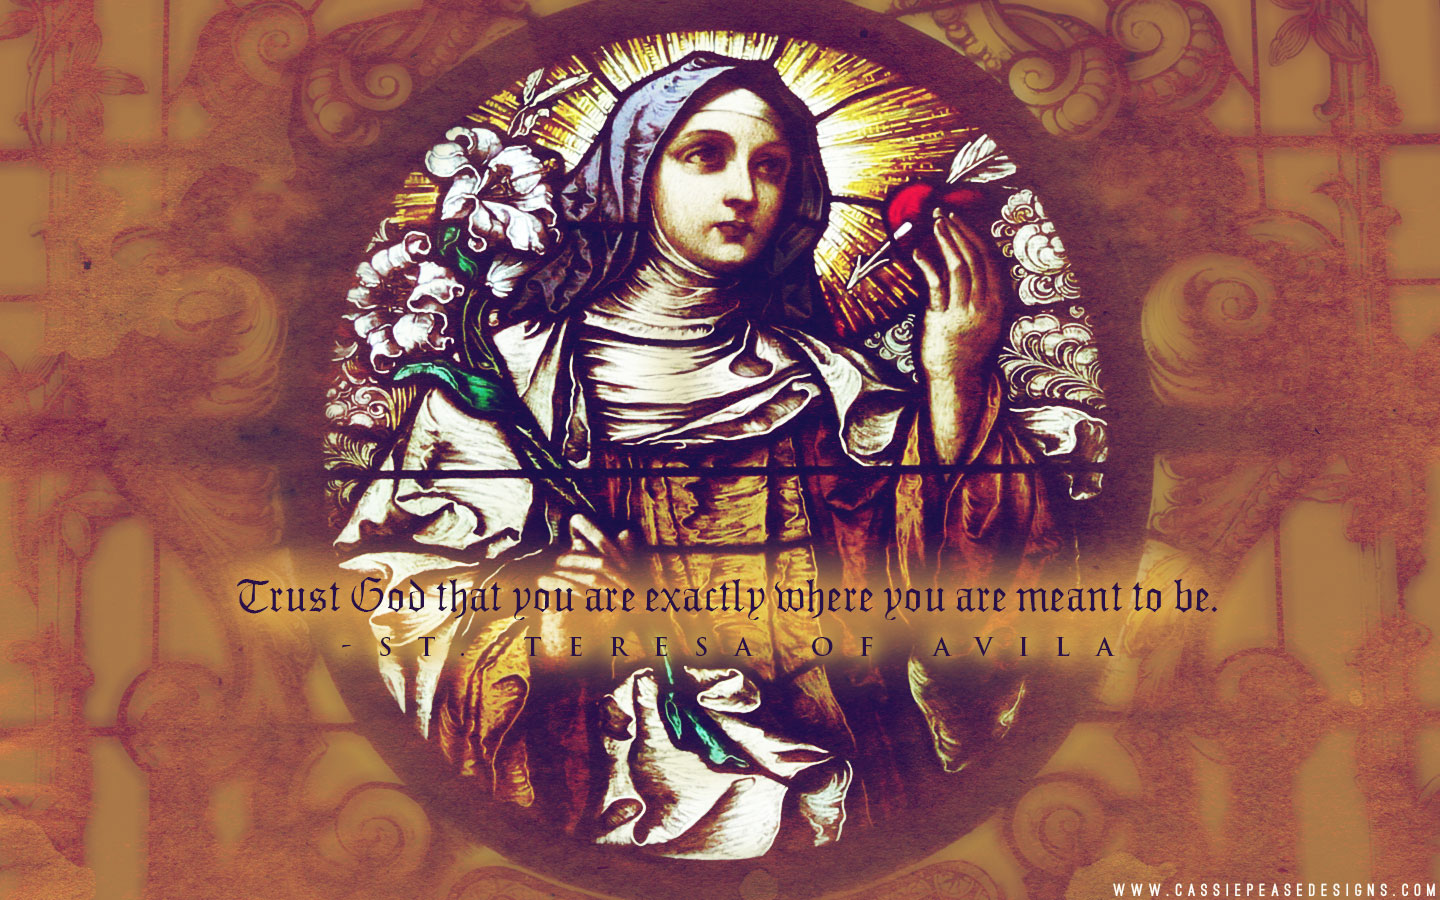 St. Teresa of Avila Desktop Wallpaper